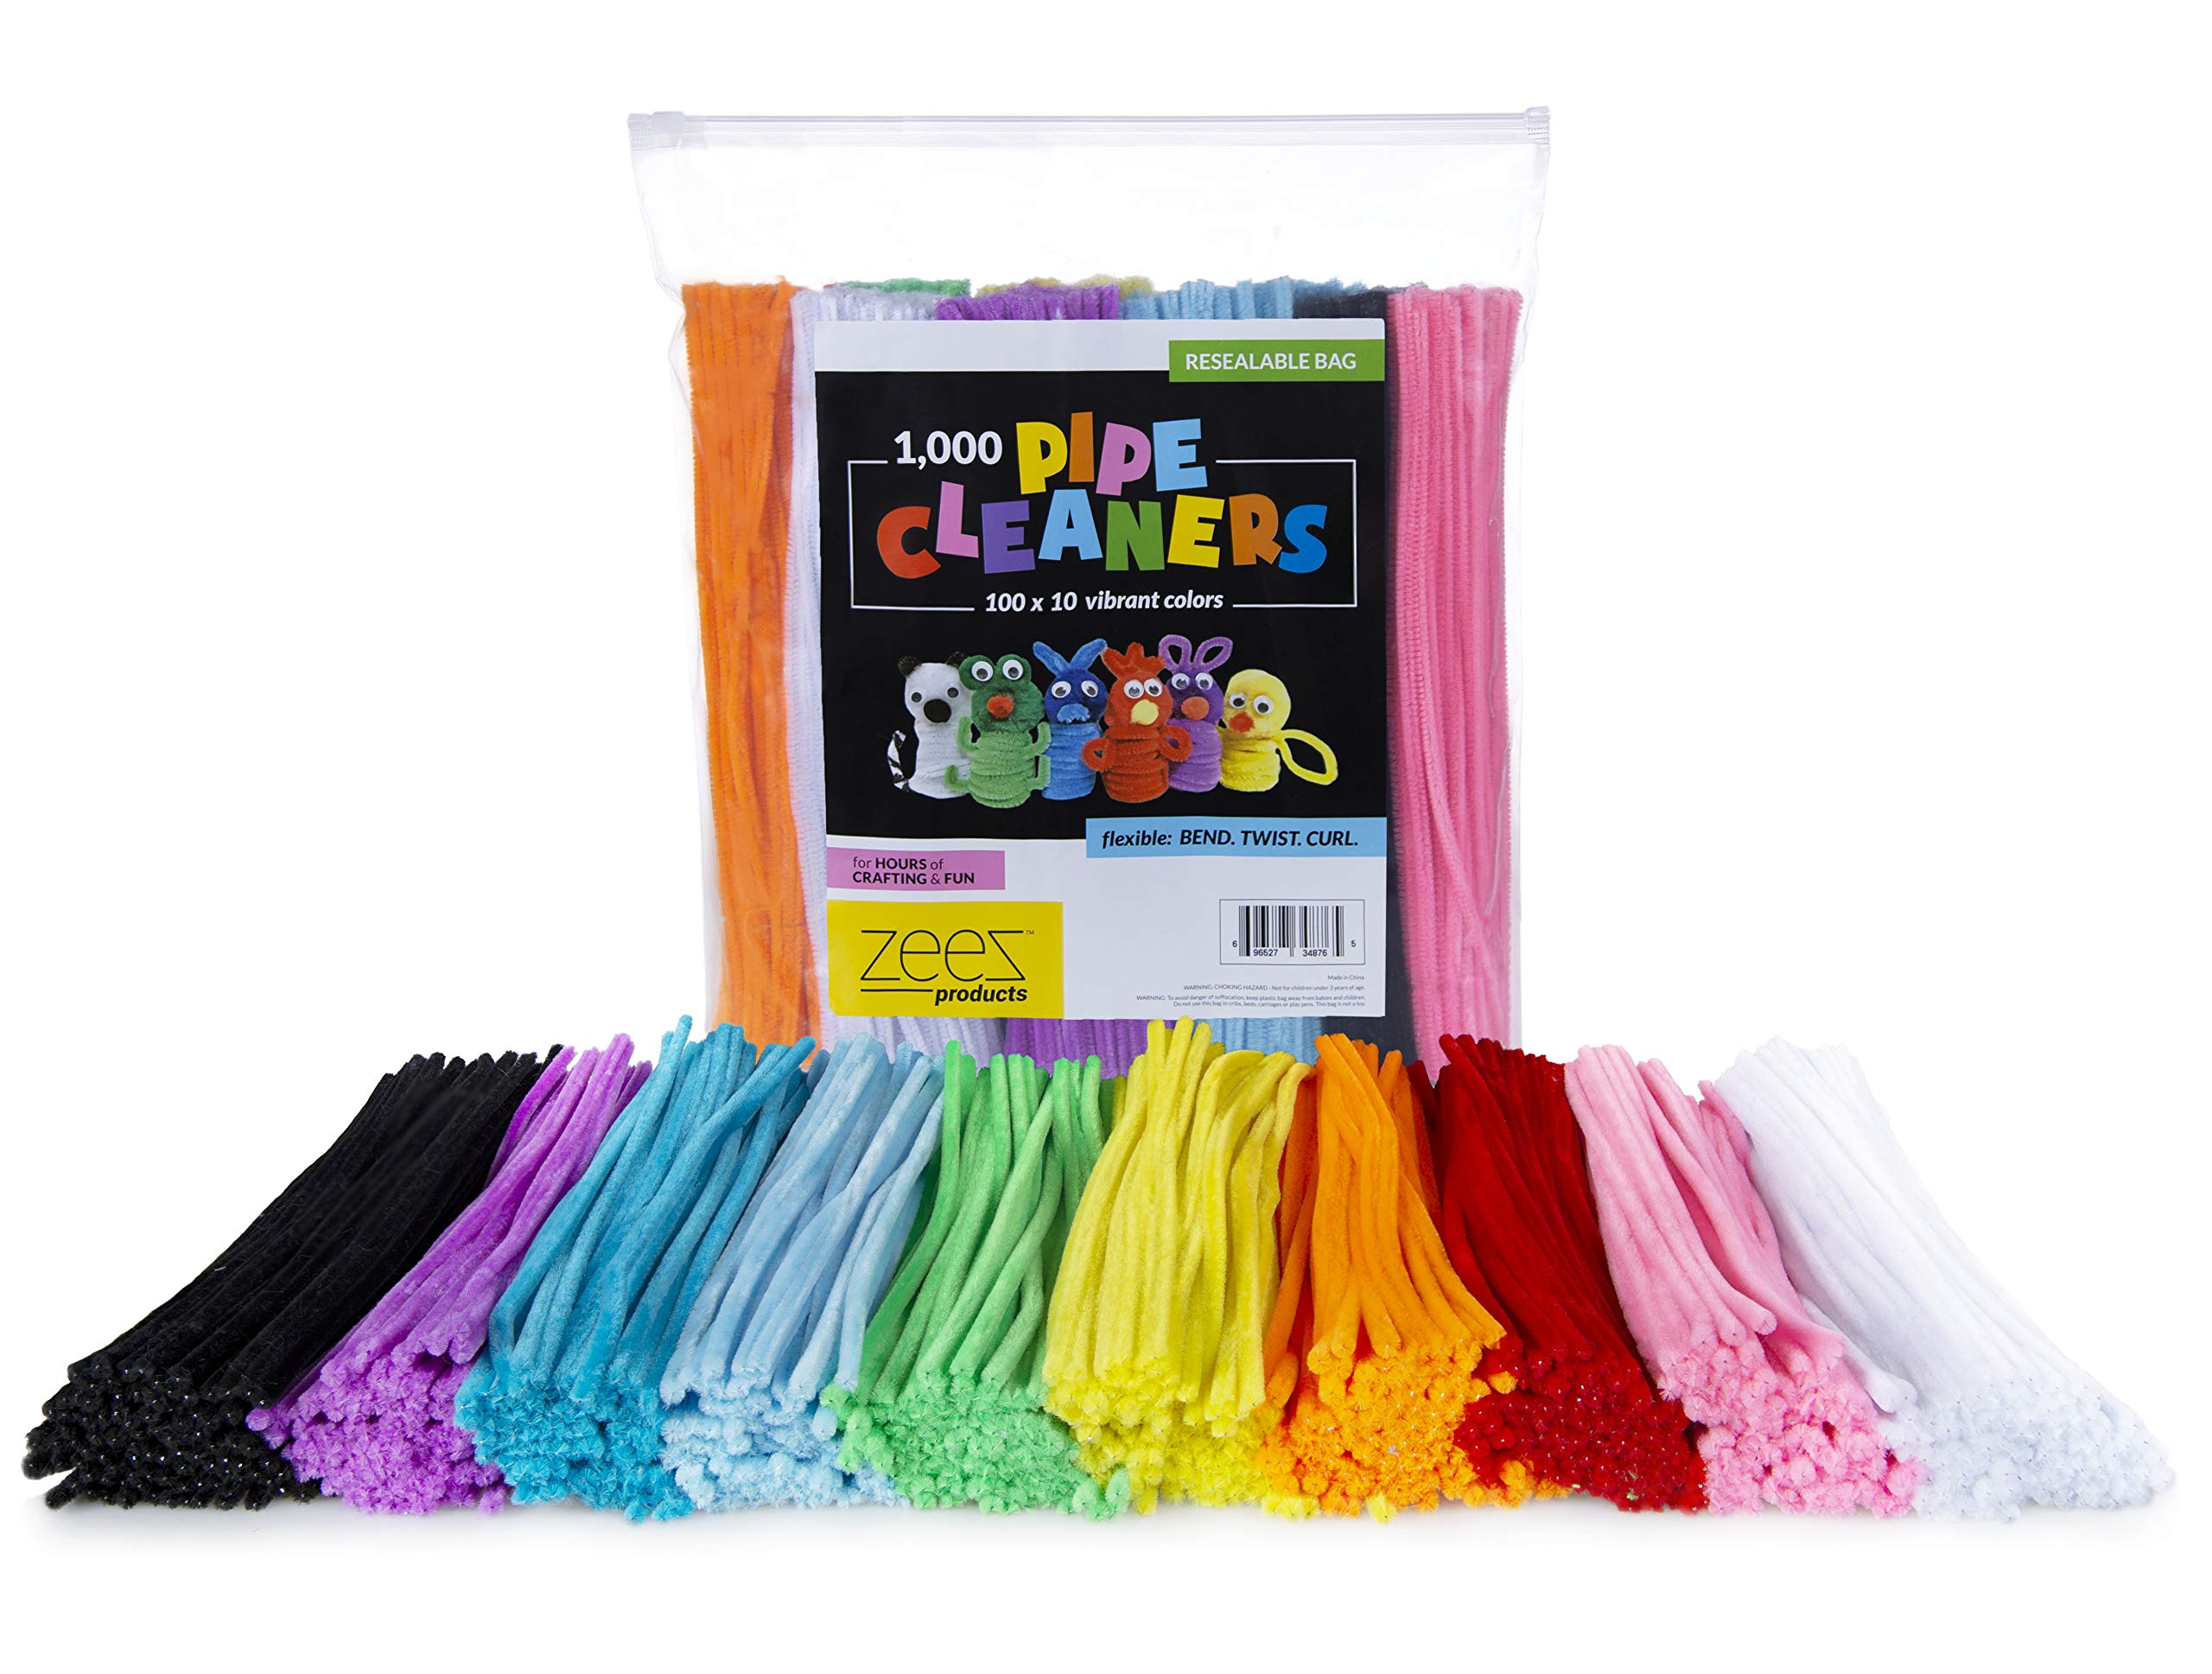 Zees 1,000 Pipe Cleaners in 10 Assorted Colors, Value Pack of Chenille Stems for DIY Arts and Craft Projects and Decorations - 6mm x 12 Inches by zees products (Image #6)